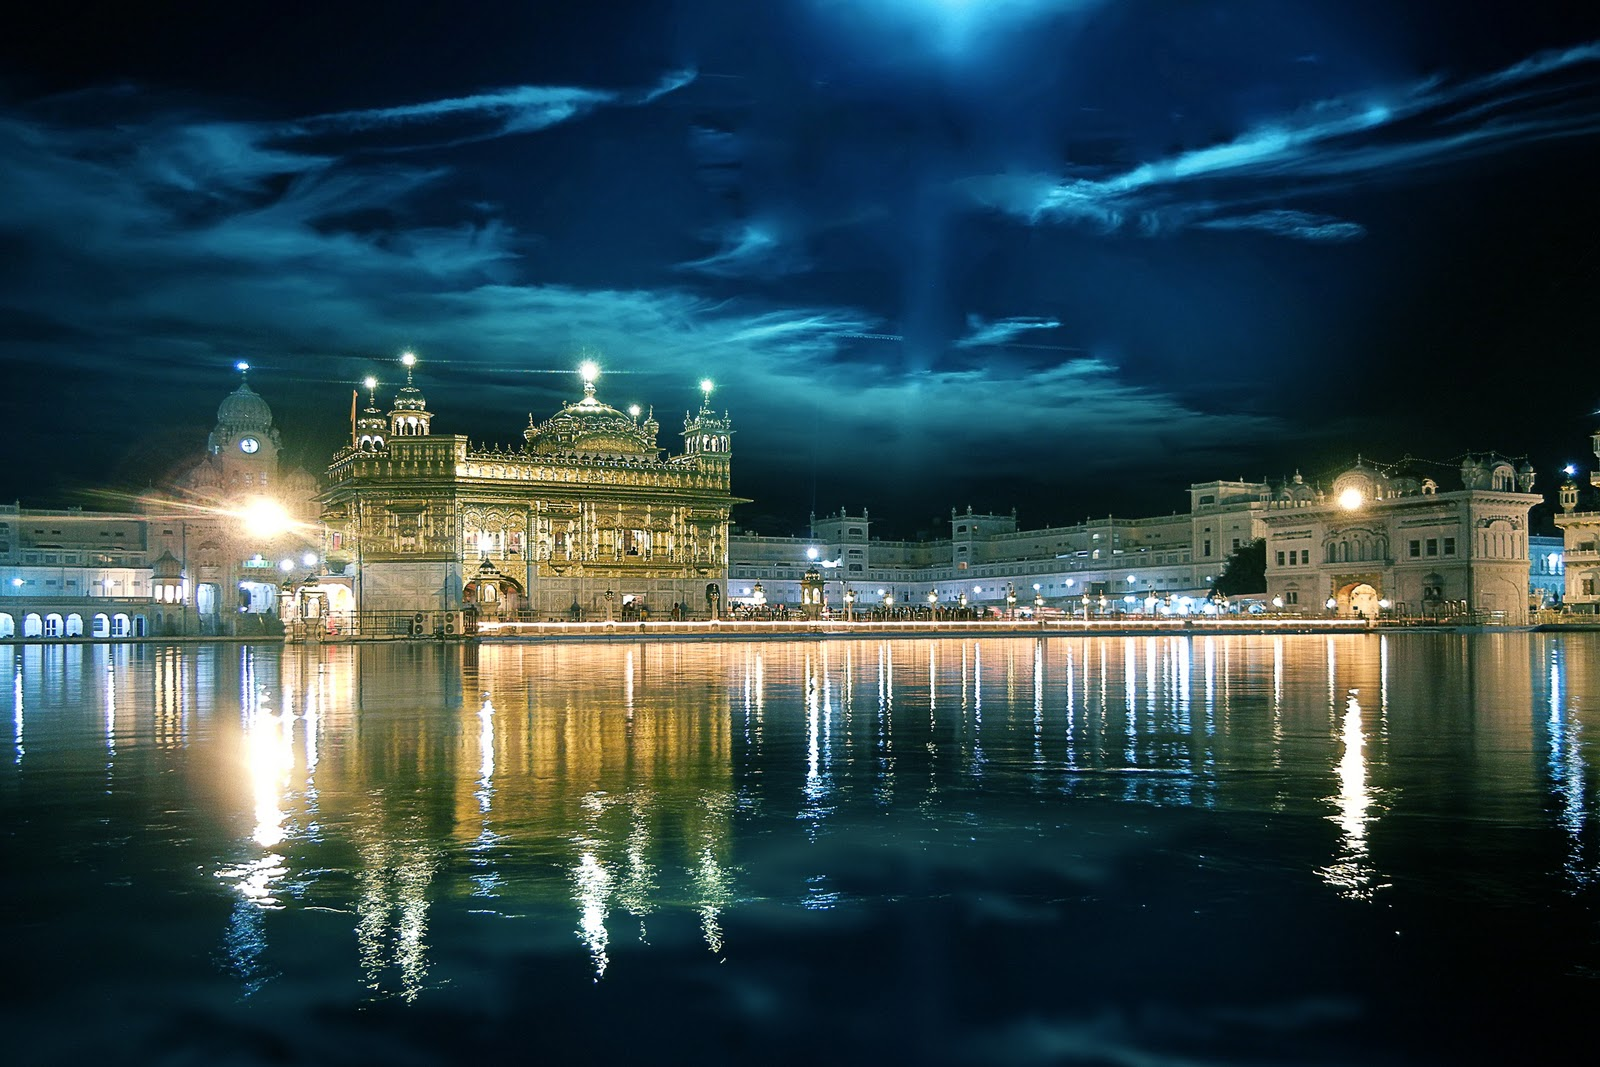 NAV IMAGES Photography Golden Temple Amritsar